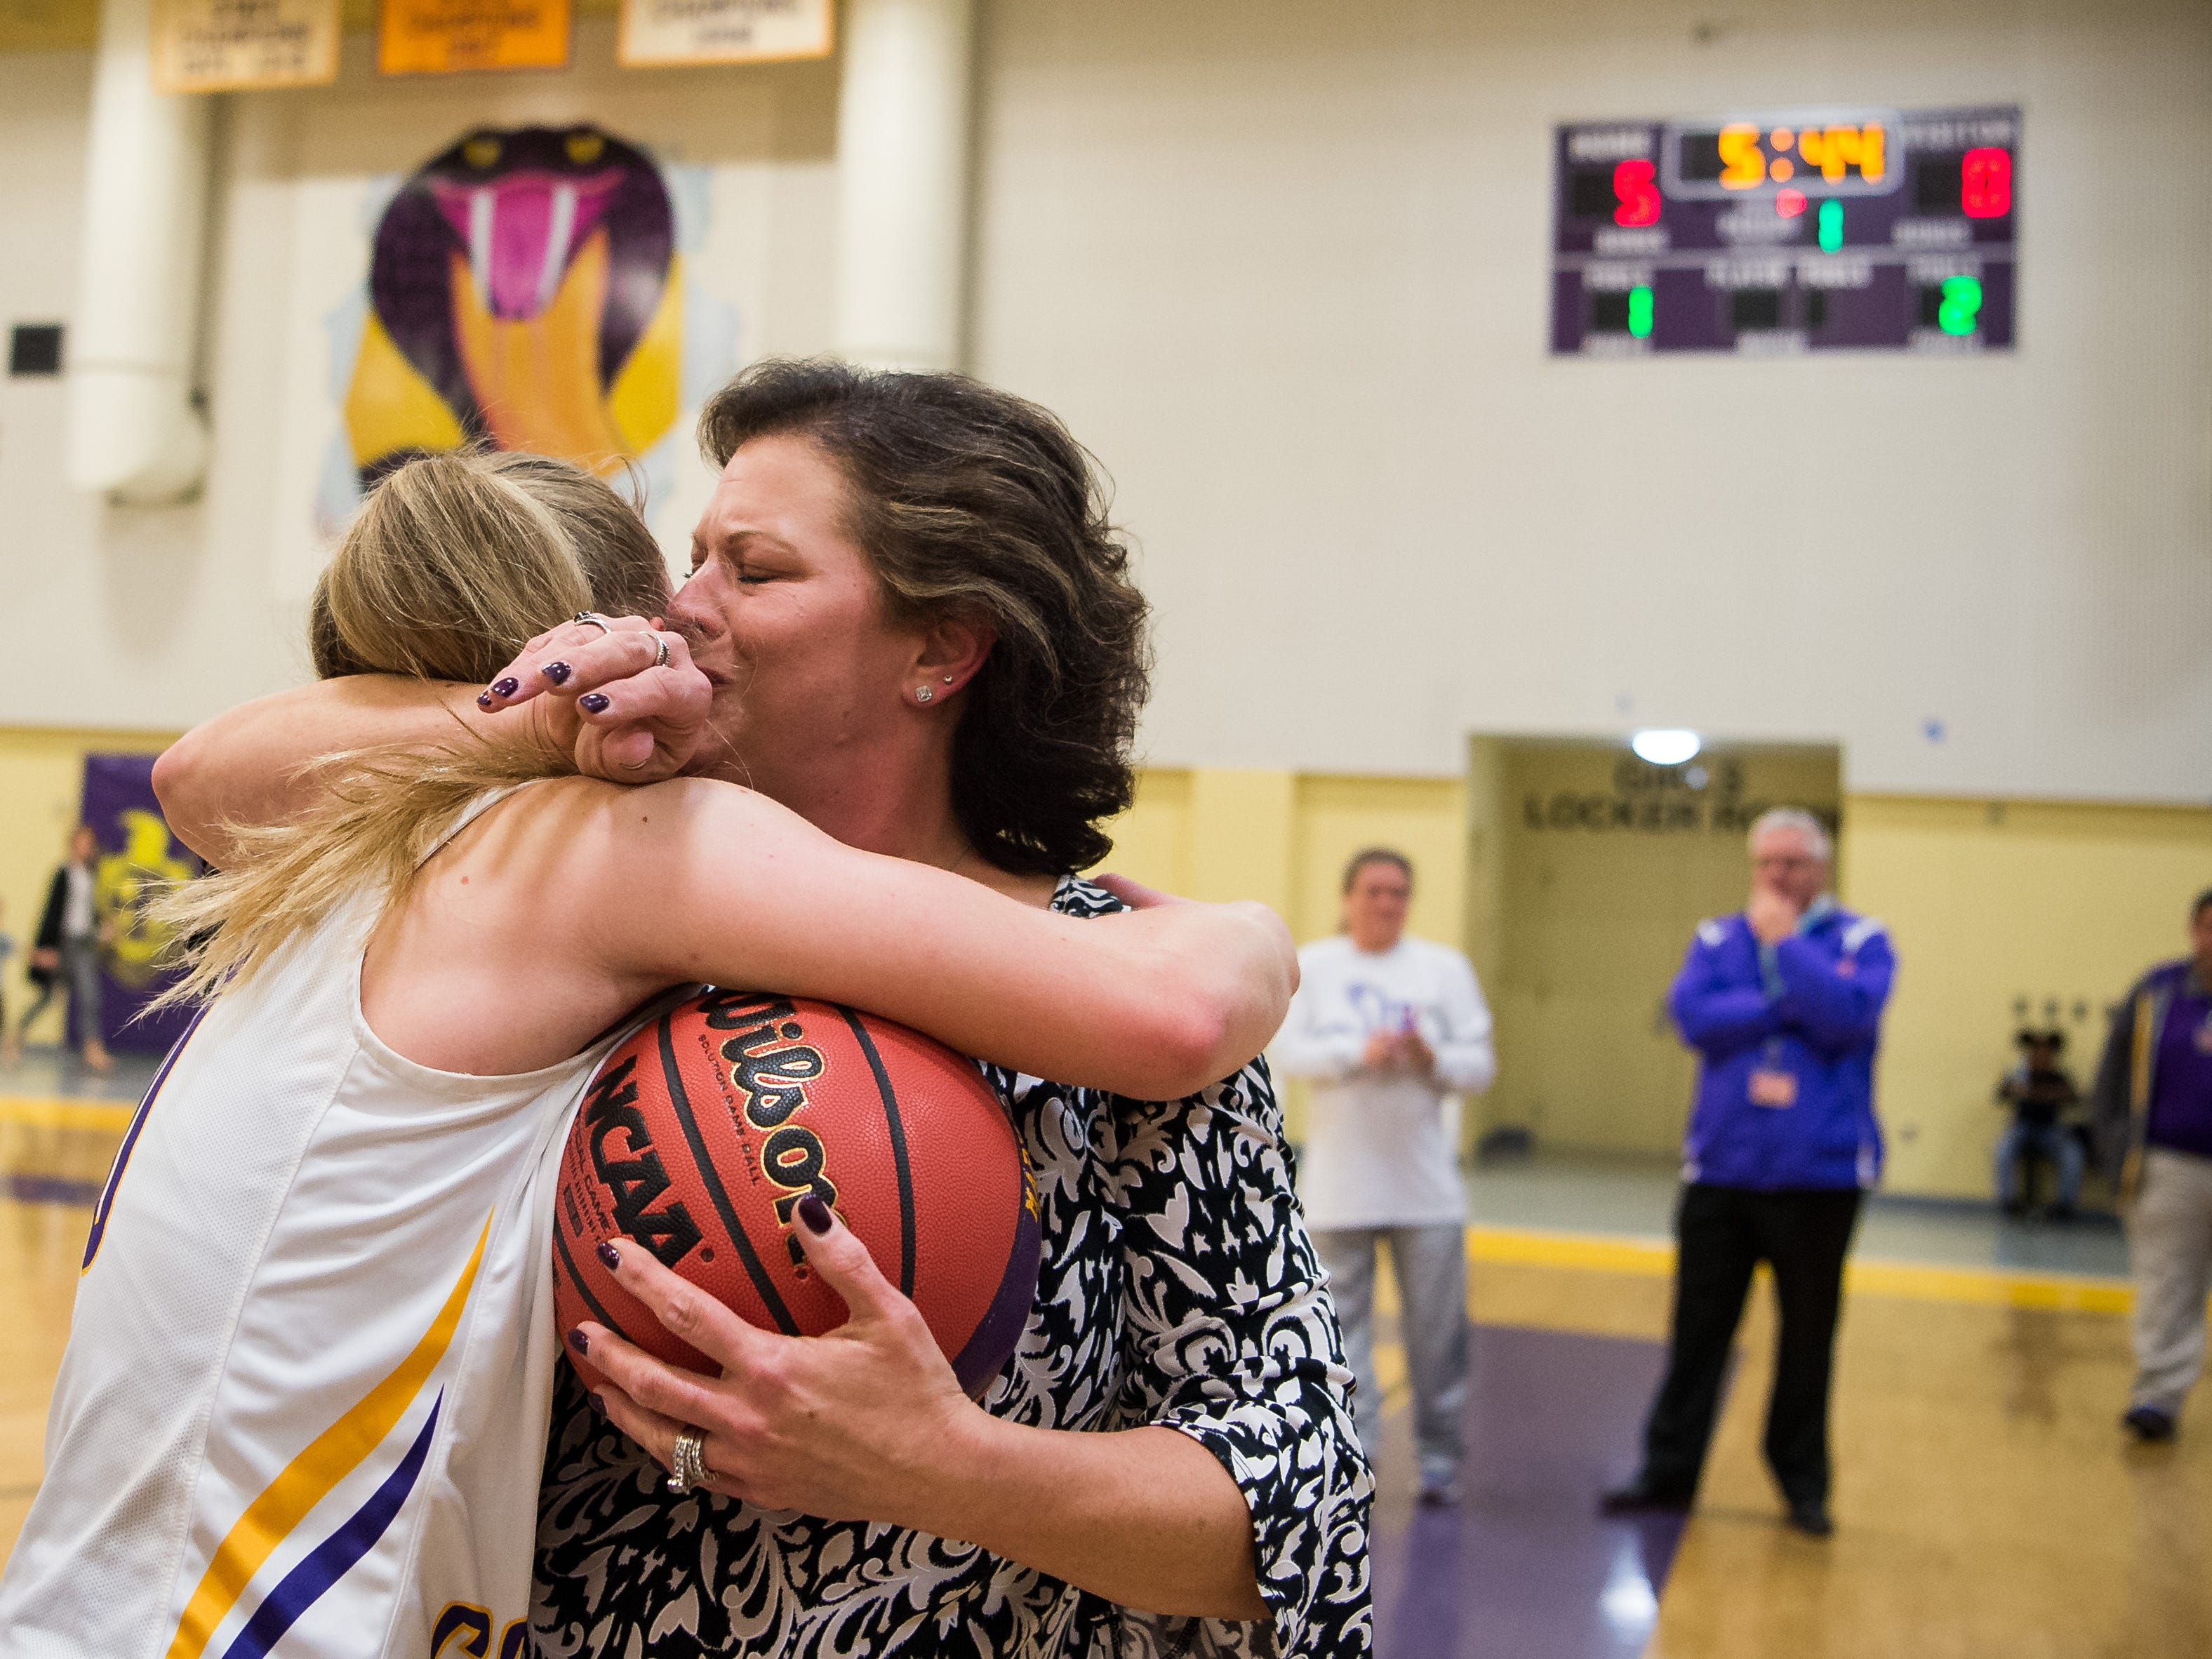 "Fort Pierce Central senior Maryanne Logsdon (left) is embraced by her mother, Stacy Logsdon, after scoring her 1,000th career point during their high school girls basketball game against Lake Worth on Thursday, Jan. 31, 2019, at Fort Pierce Central High School. ""We're very proud of her, she still continues to amaze us...her work ethic is unbelievable,"" the mother said, adding that Maryanne signed to play with Indian River State College after graduation. ""Our coach is amazing, she's family."""